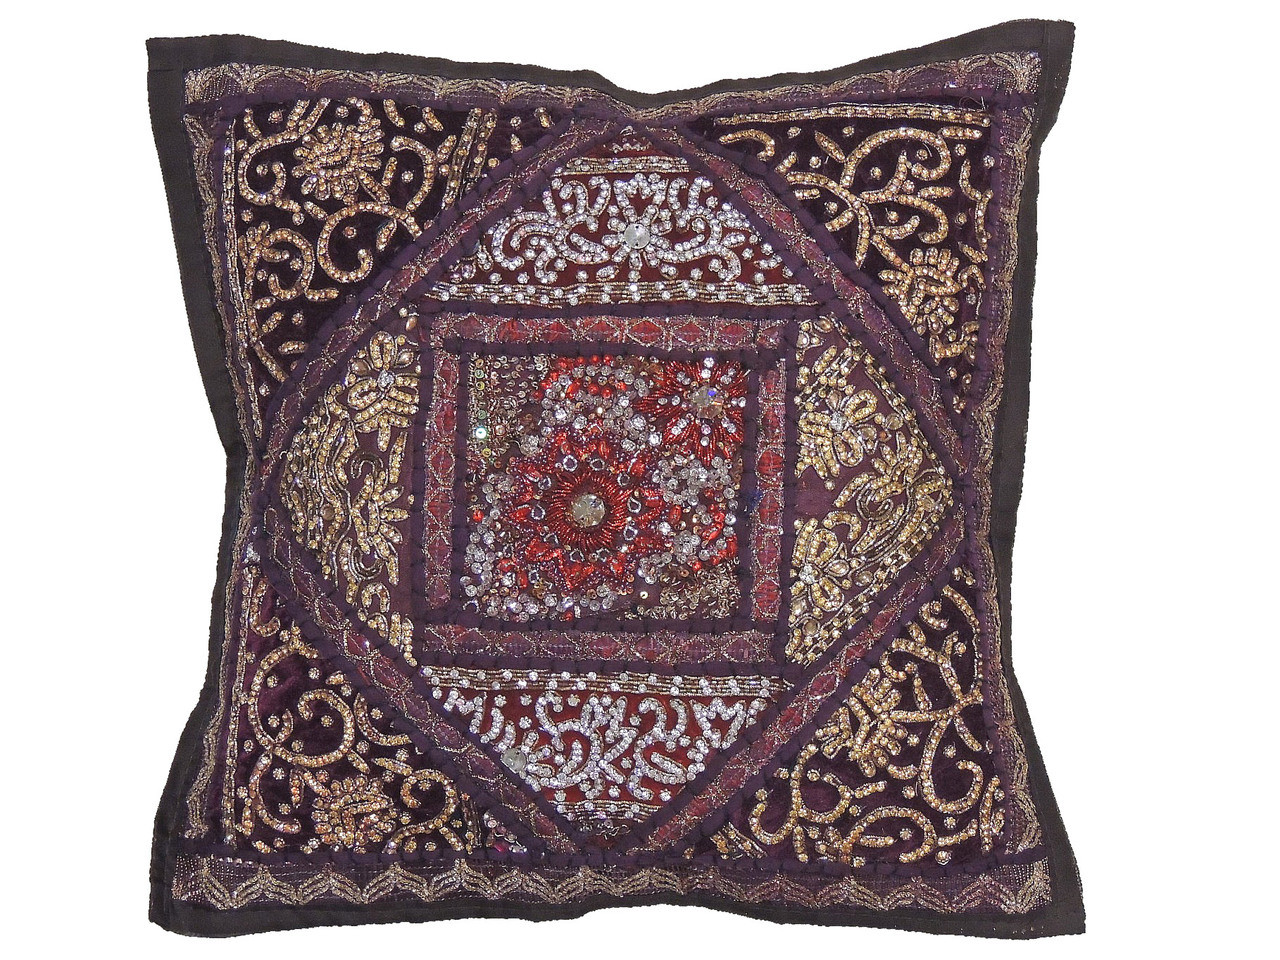 Brown decorative living room pillow cover beaded couch cushion 16 novahaat Decorative pillows living room